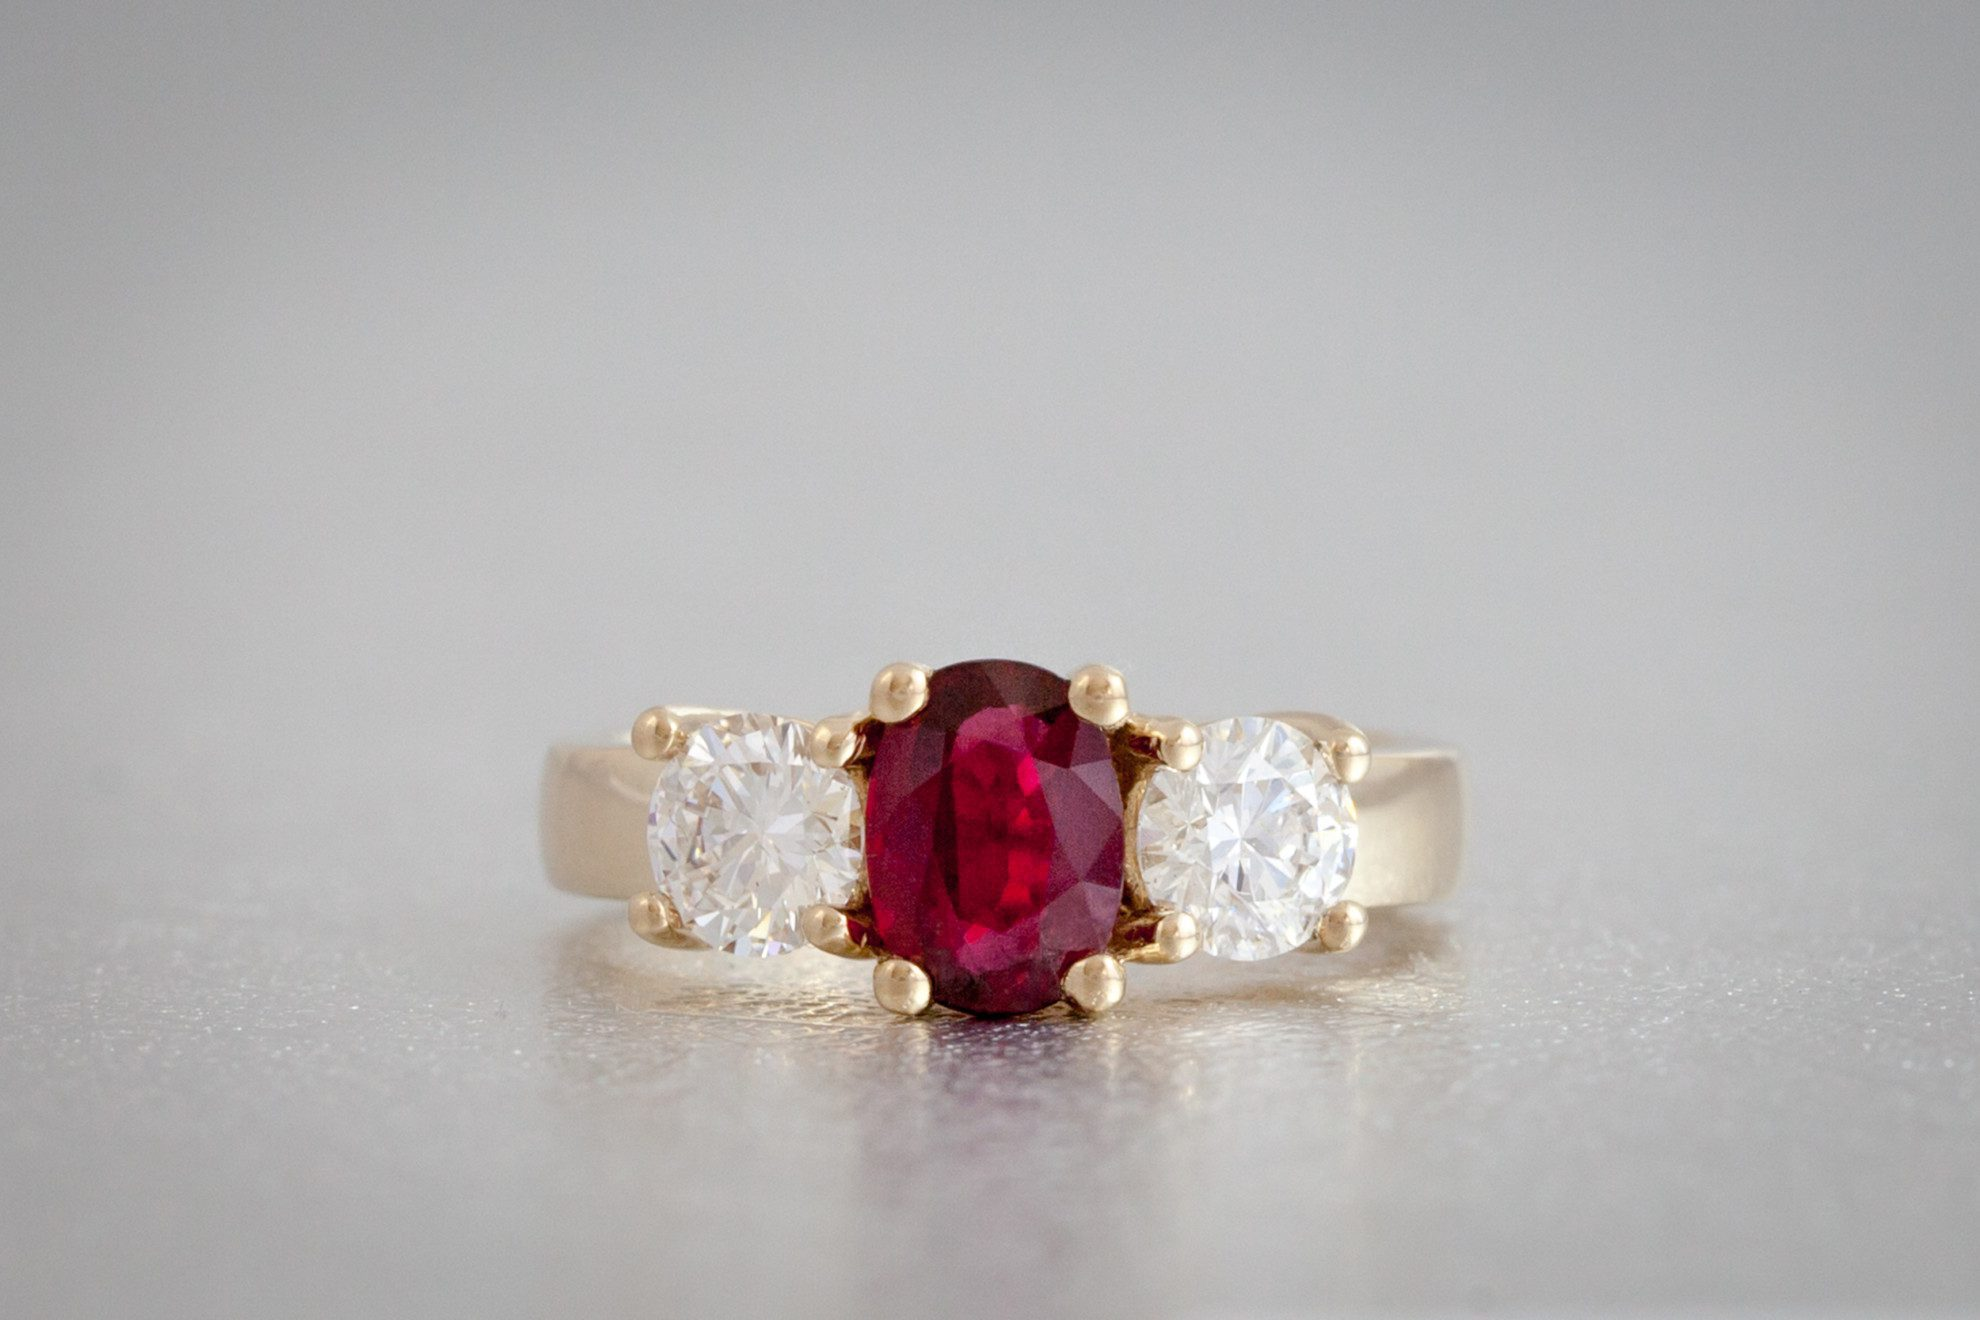 diamond kind gallery of ruby rings bayco one ring jewelry a lyst red in